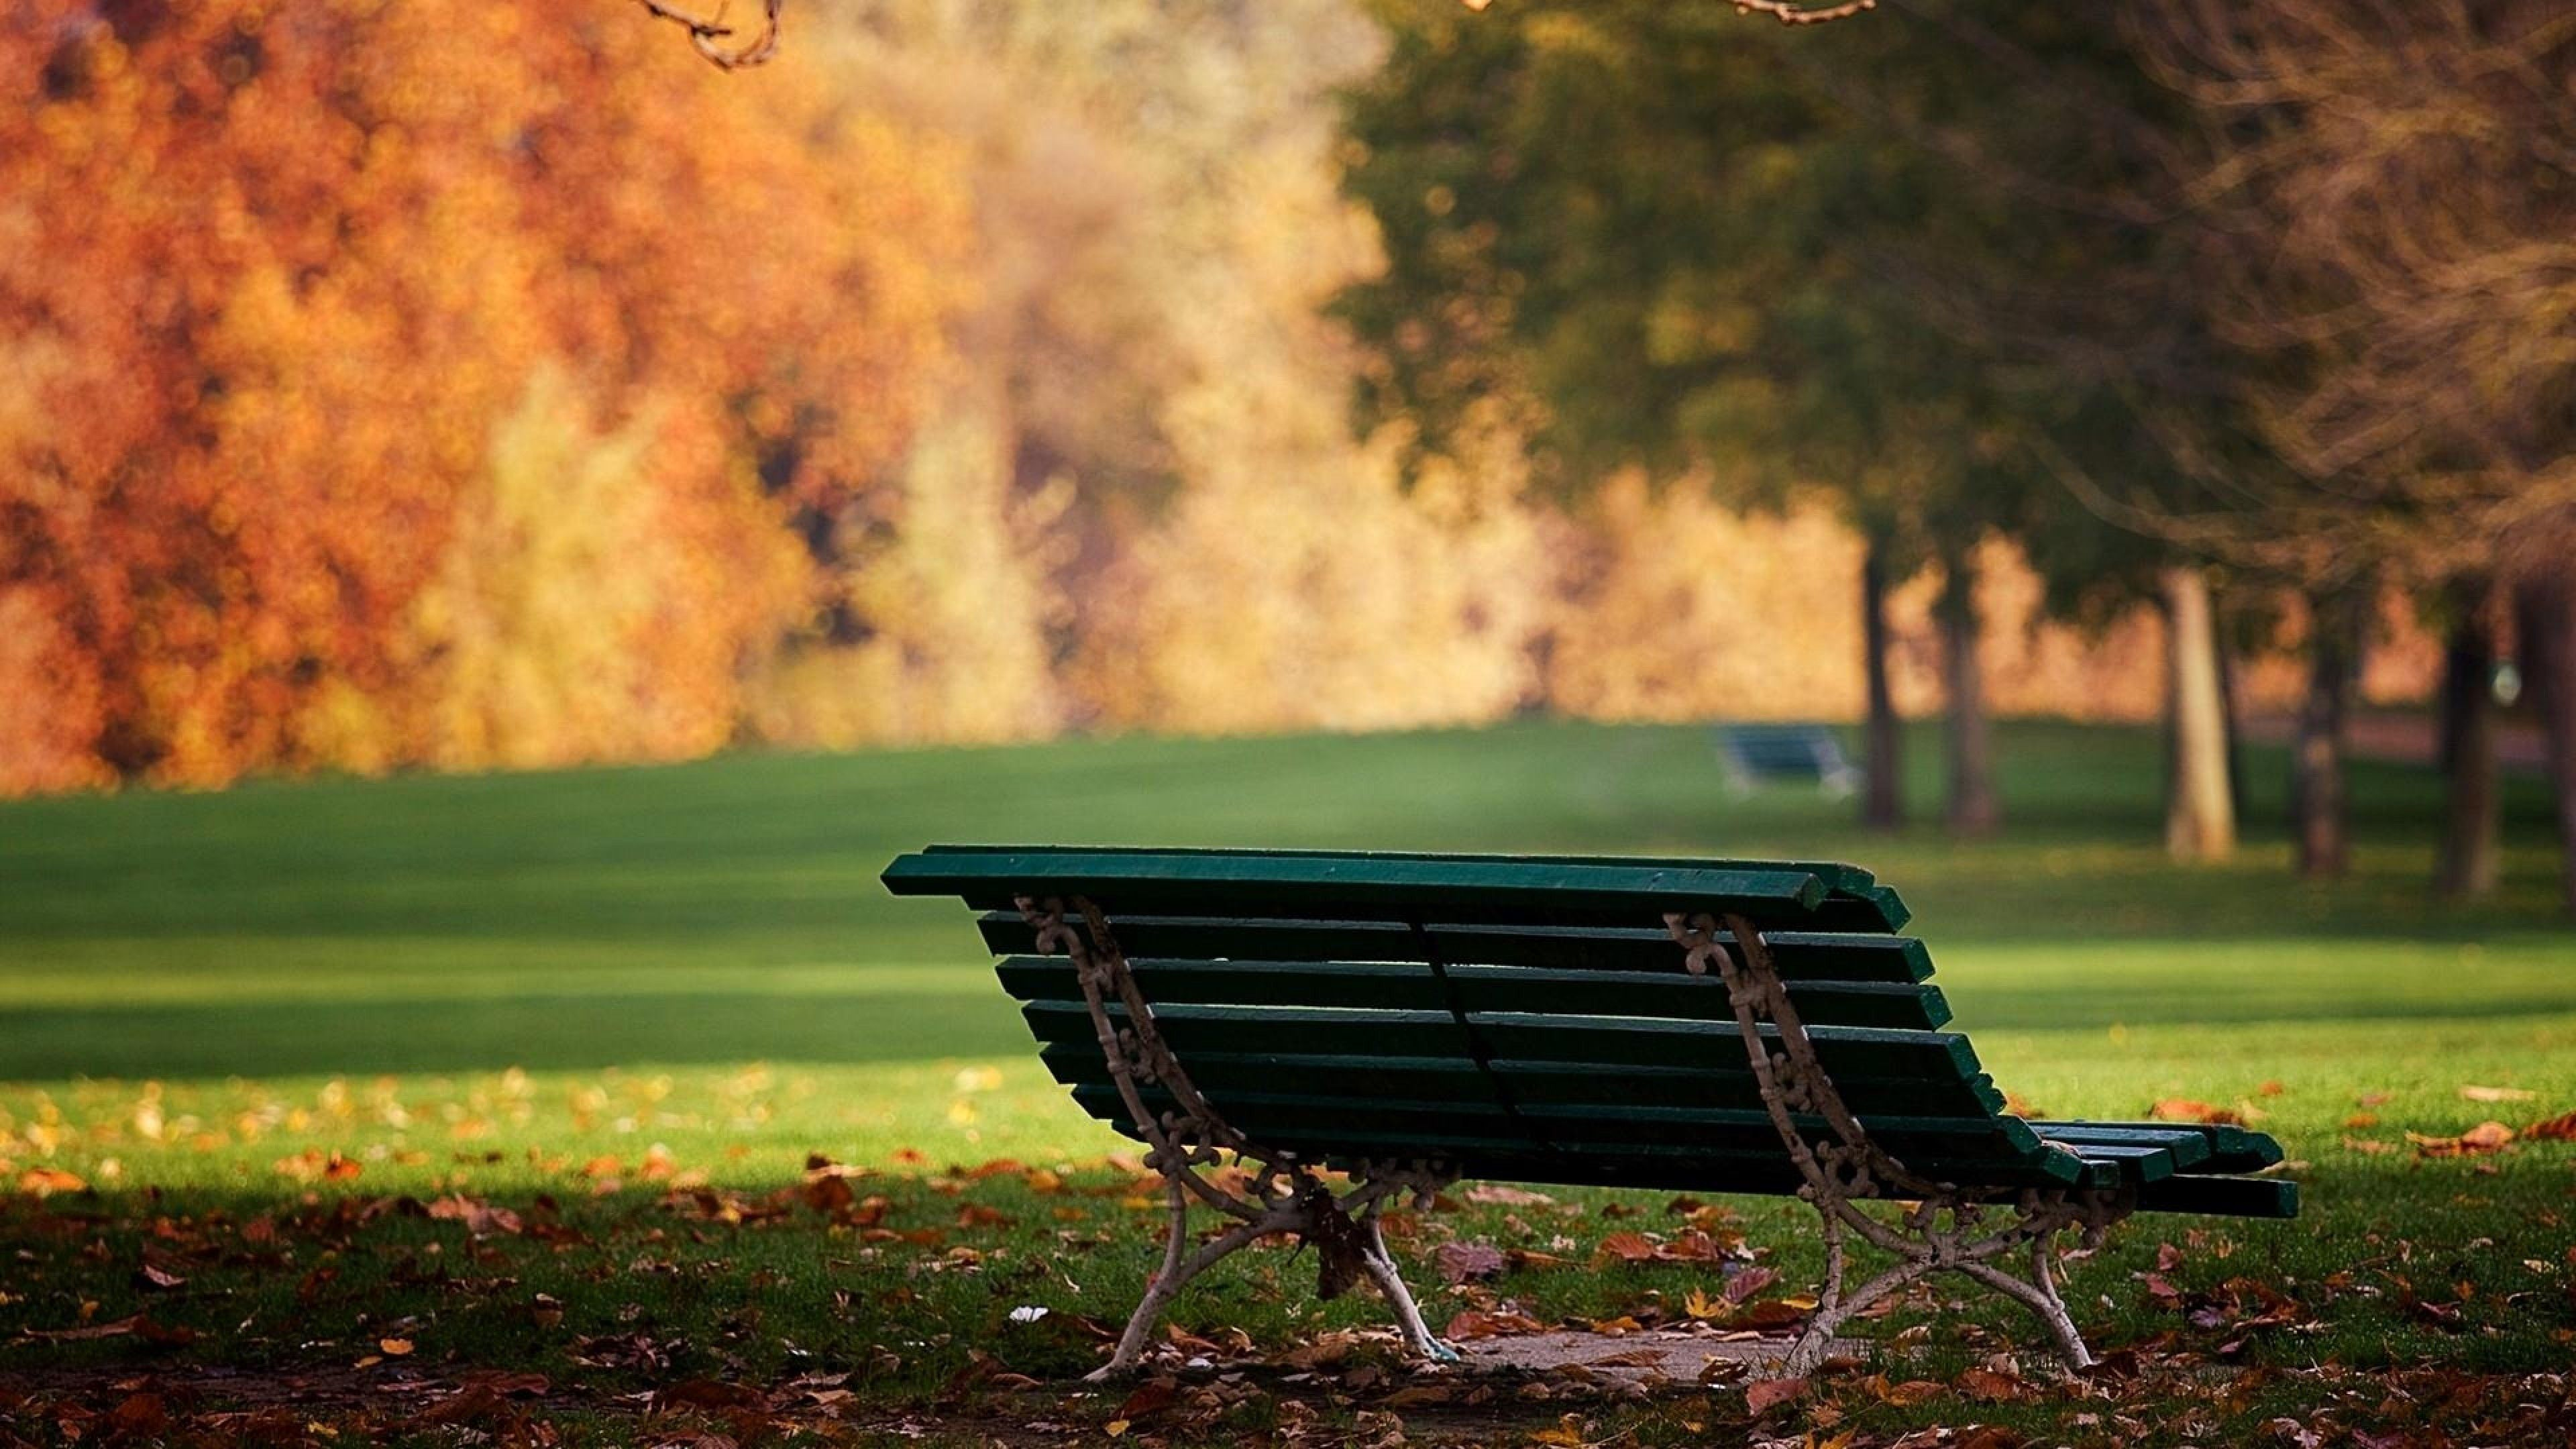 Bench in Garden During Summer Season hd wallpapers